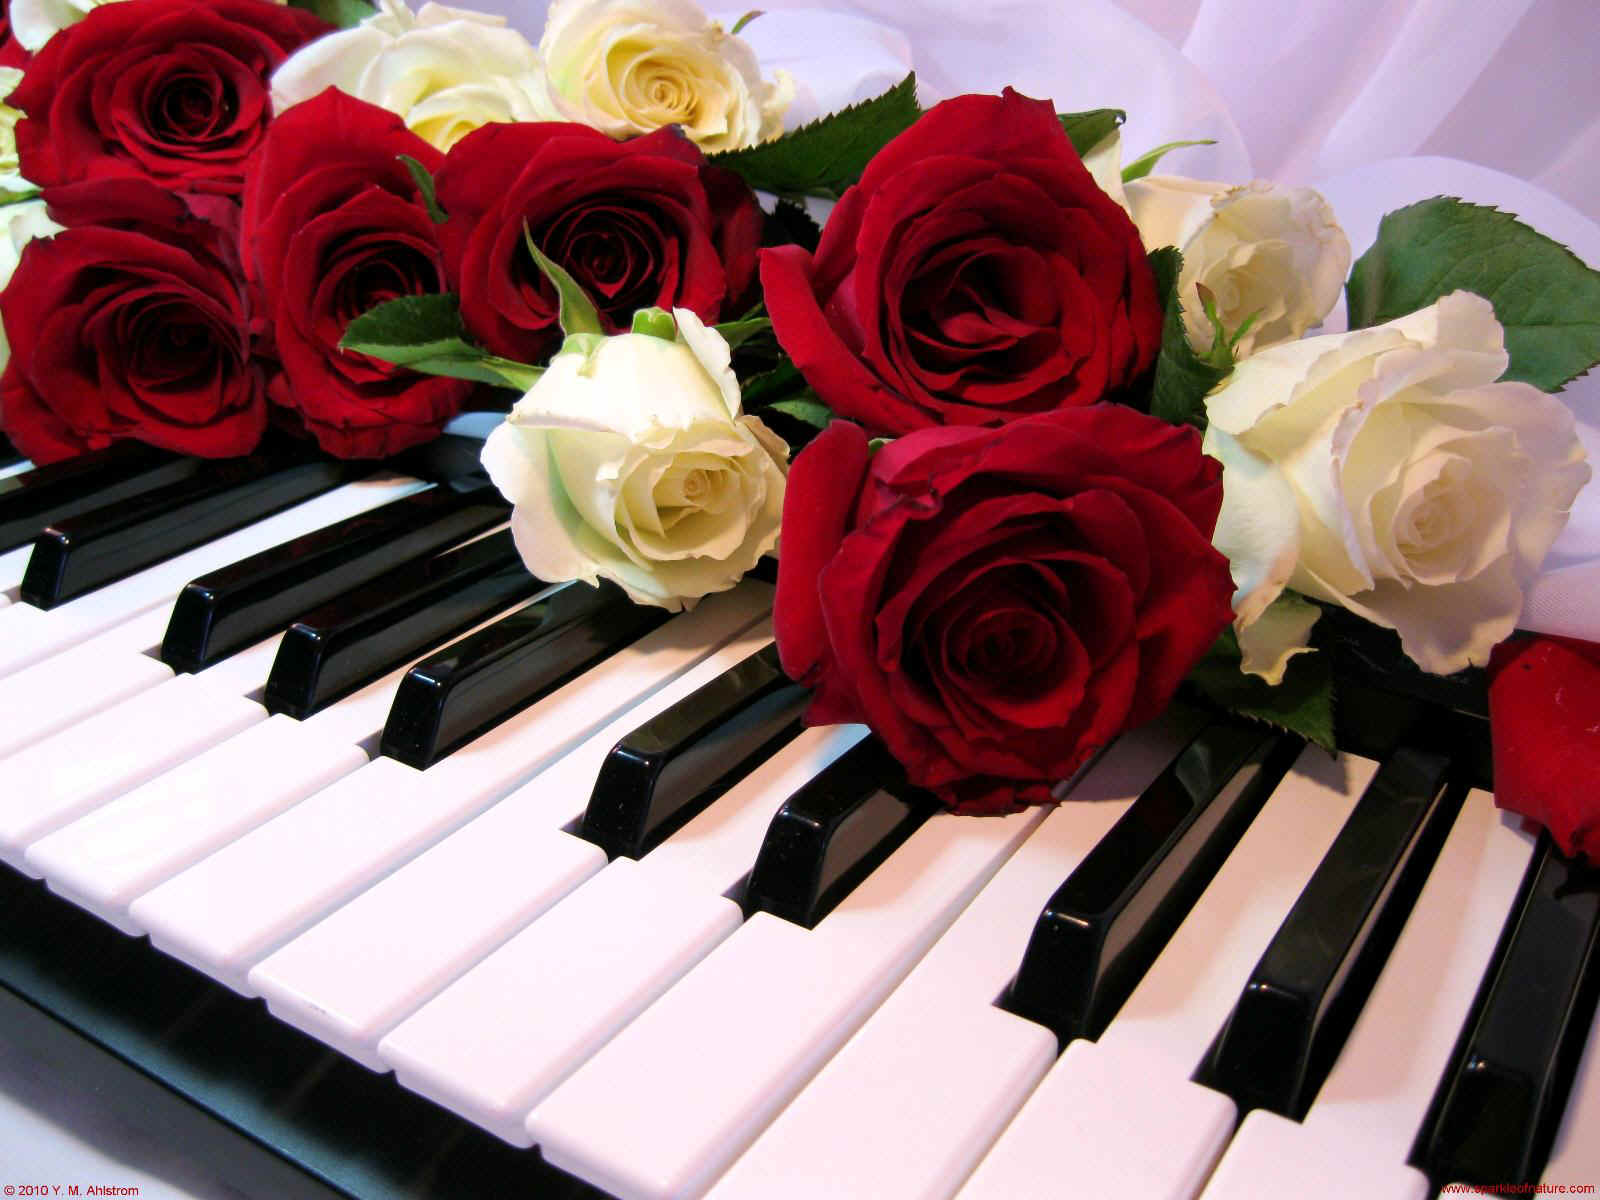 15149 roses on piano 1600x1200.jpg (198165 bytes)